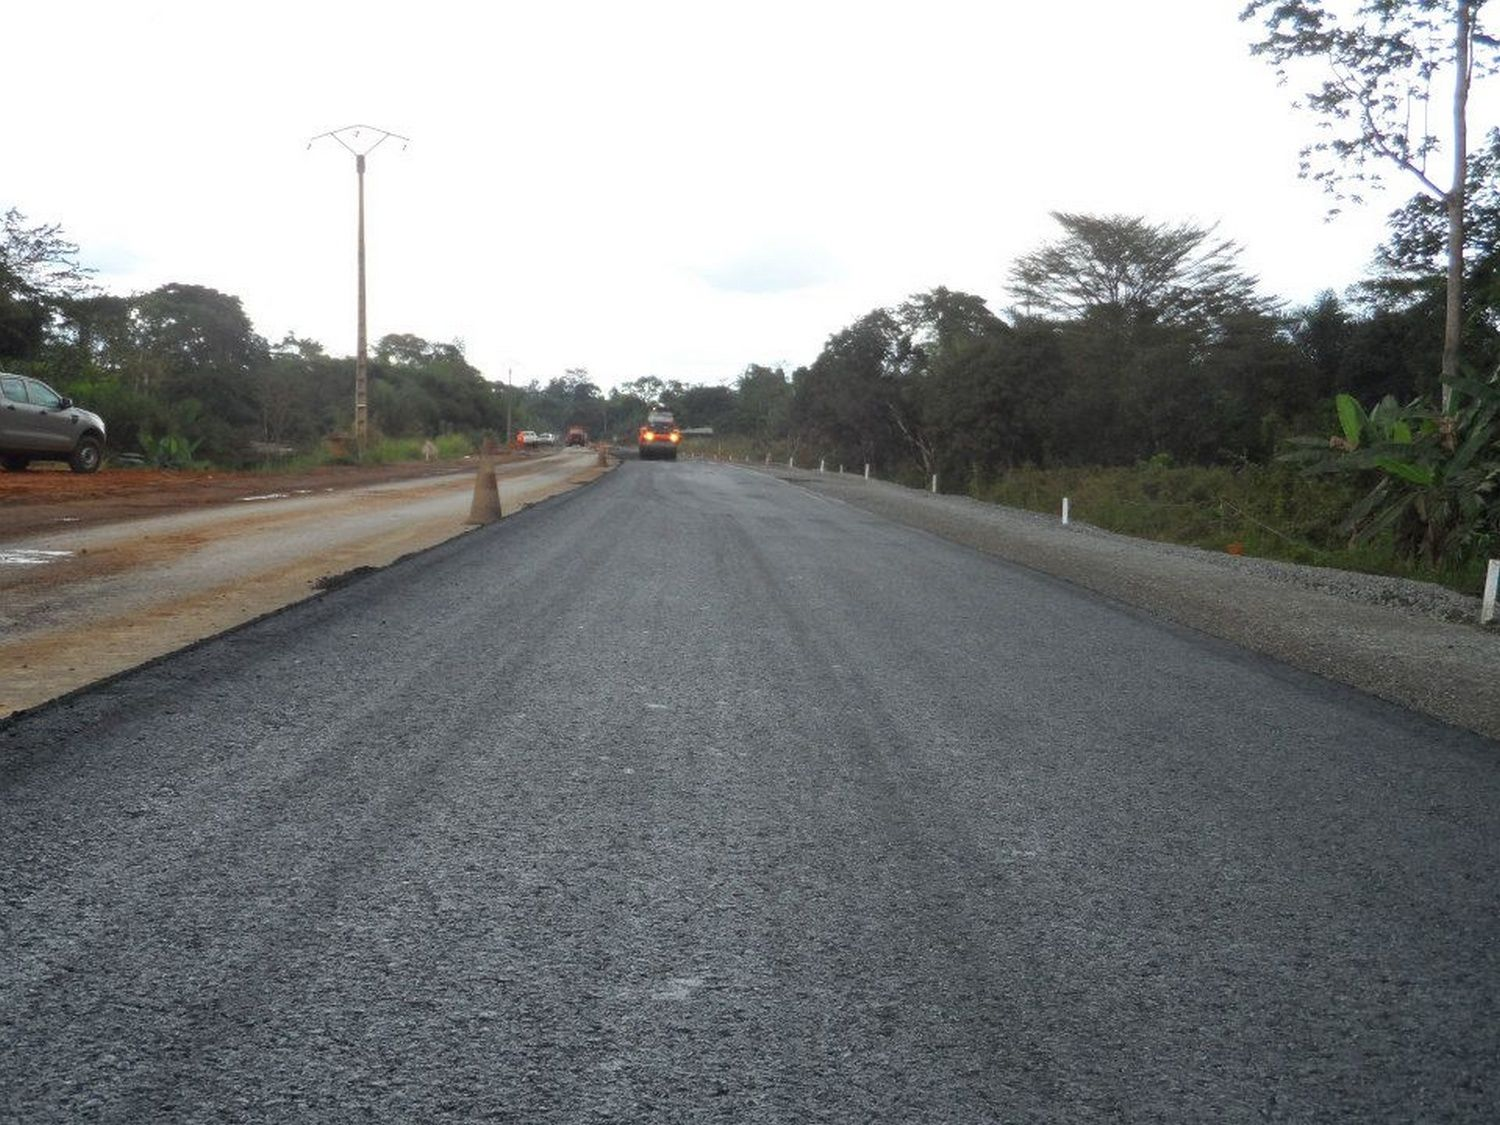 Le Gabon émergent en action : Rénovation de la Route Nationale 1 LBV-Ntoum-Kango-Bifoun